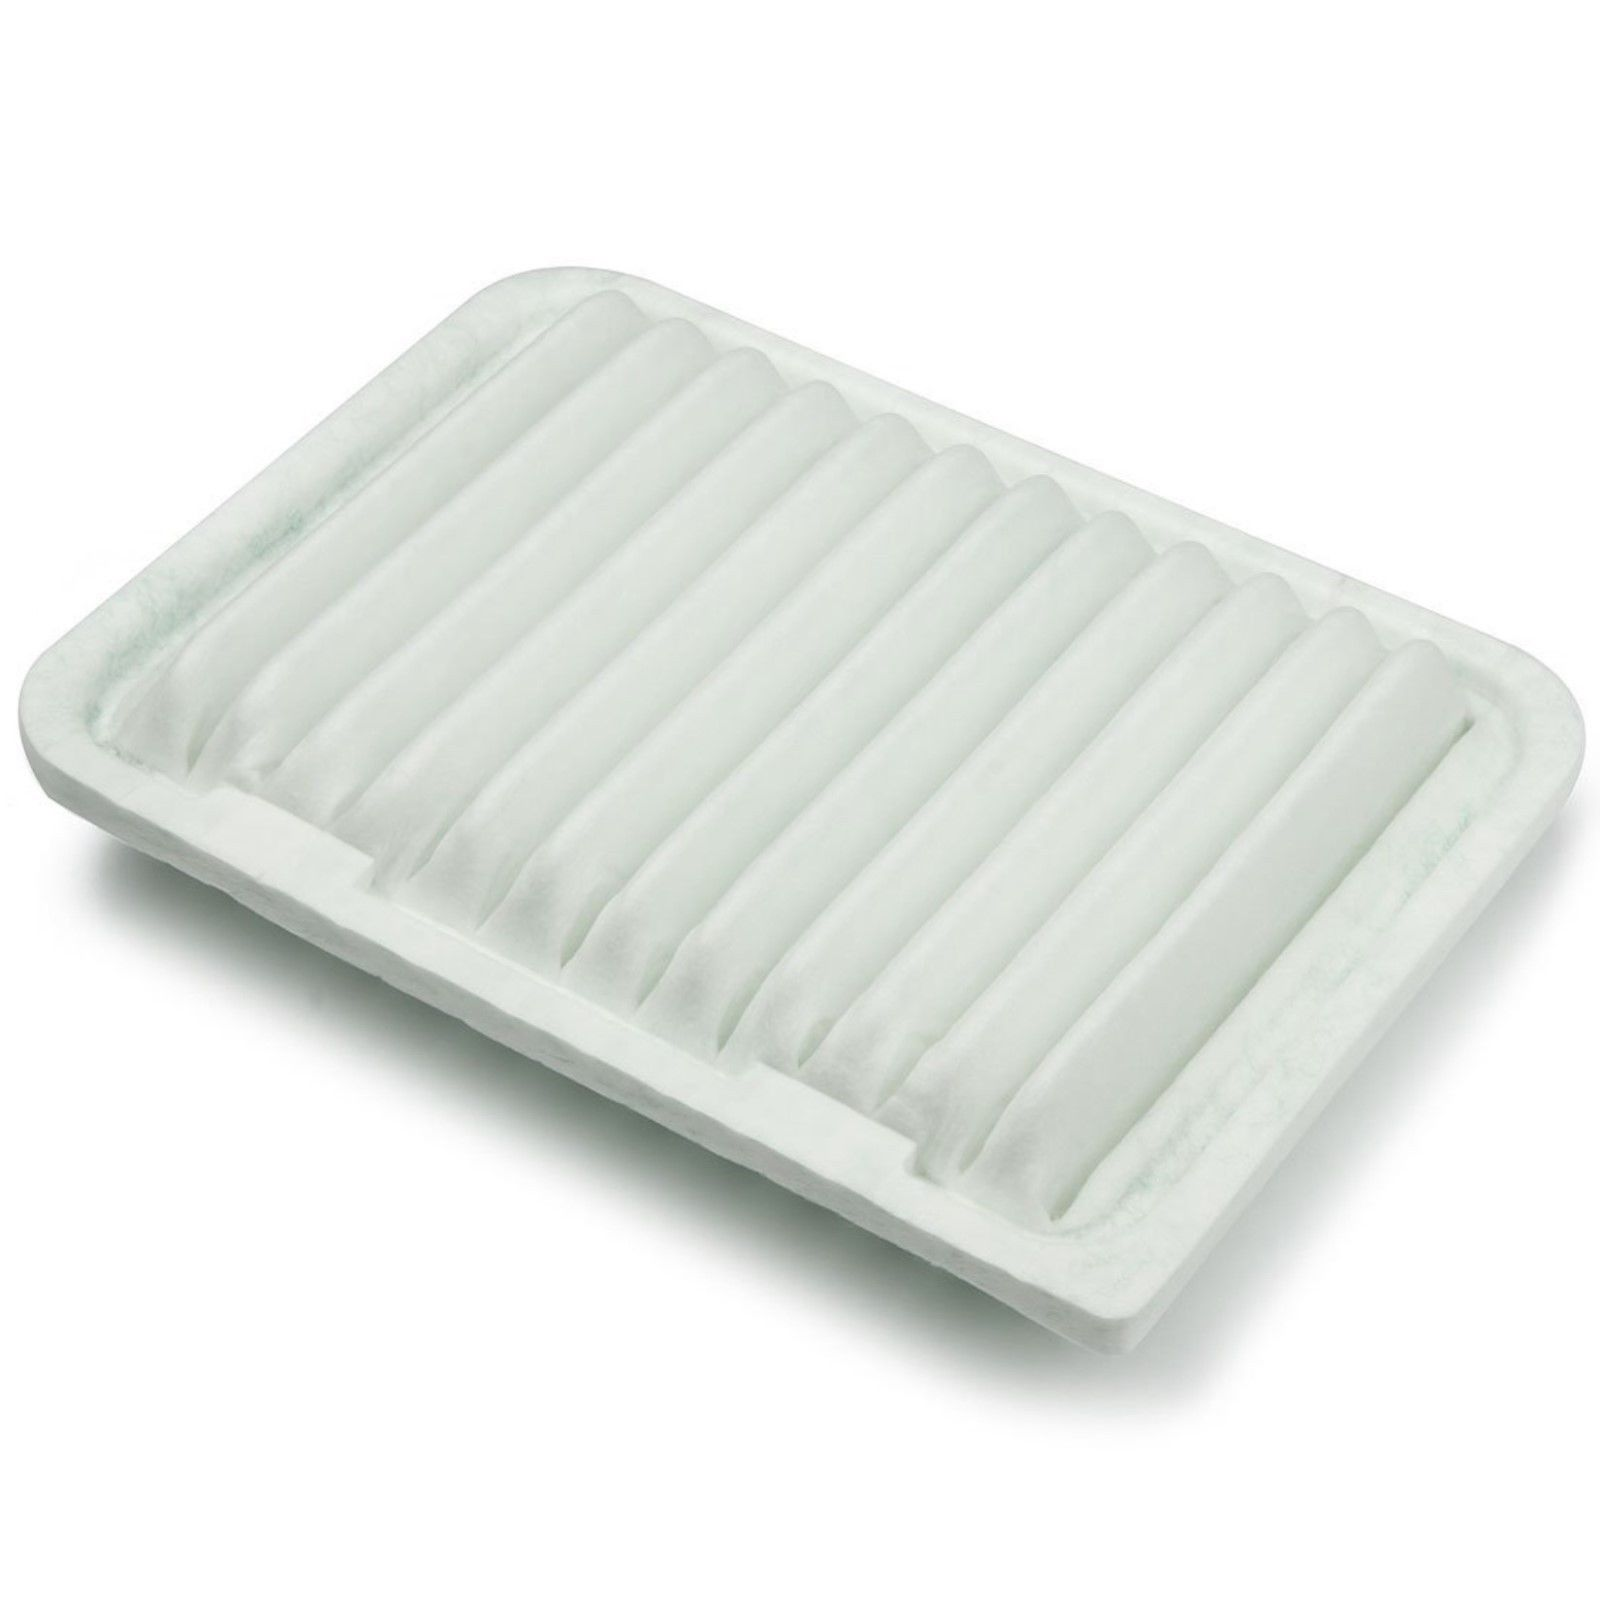 ENGINE-AIR-font-b-FILTER-b-font-17801-20040-for-TOYOTA-font-b-Camry-b-font Amazing toyota Camry 2006 Cabin Air Filter Cars Trend